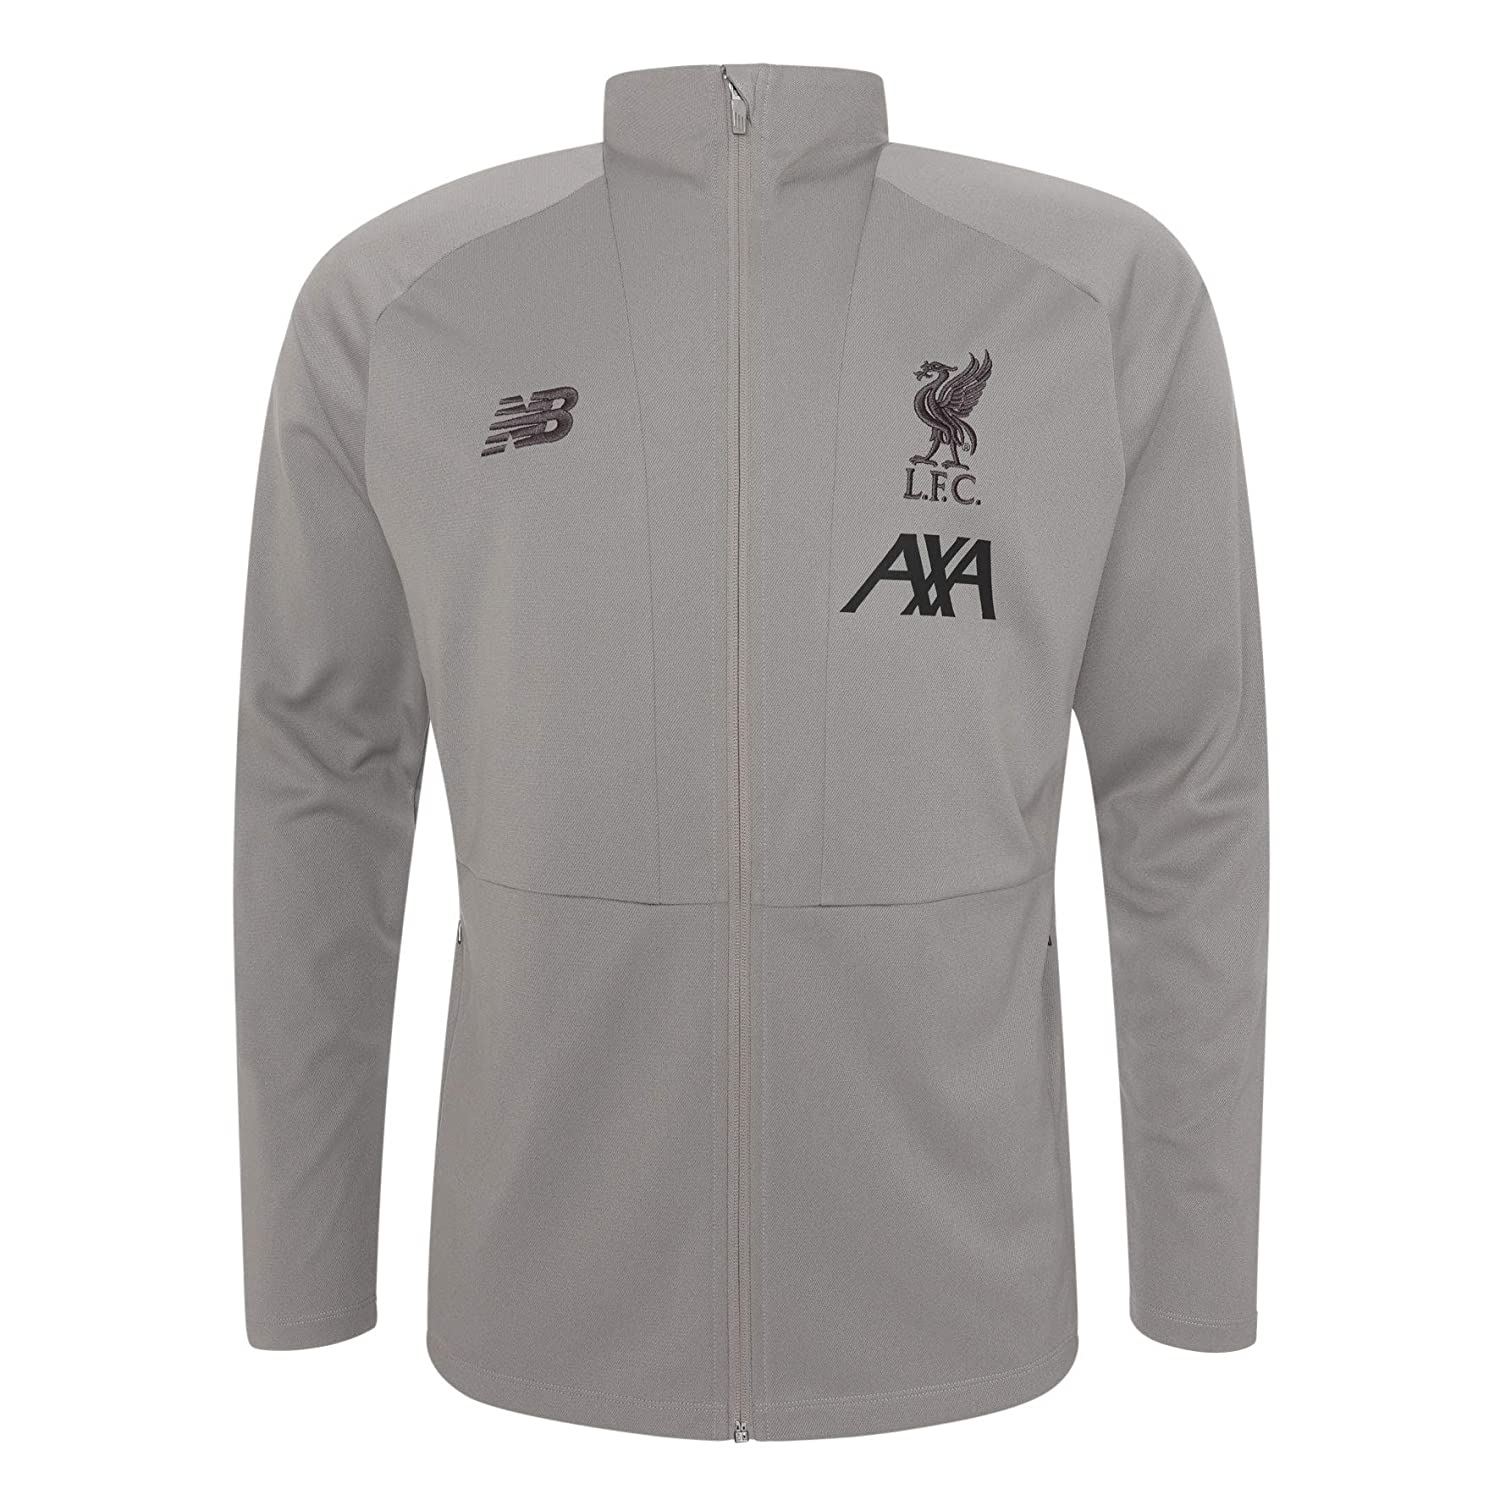 Liverpool FC Grey Polyester Boys Football Training Travel Knit Jacket 2019//2020 LFC Official